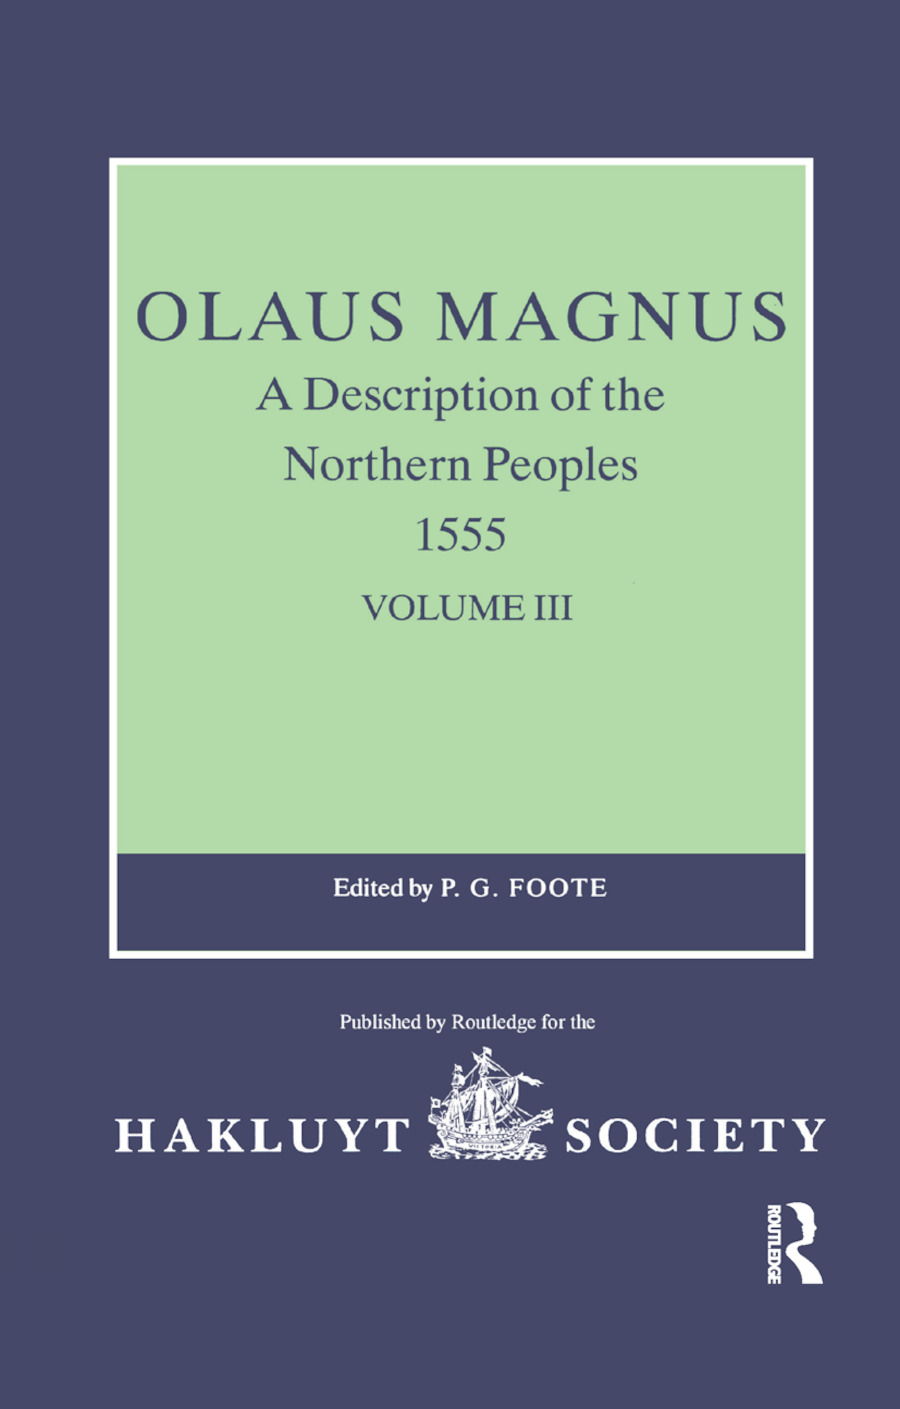 Olaus Magnus, A Description of the Northern Peoples, 1555: Volume III book cover